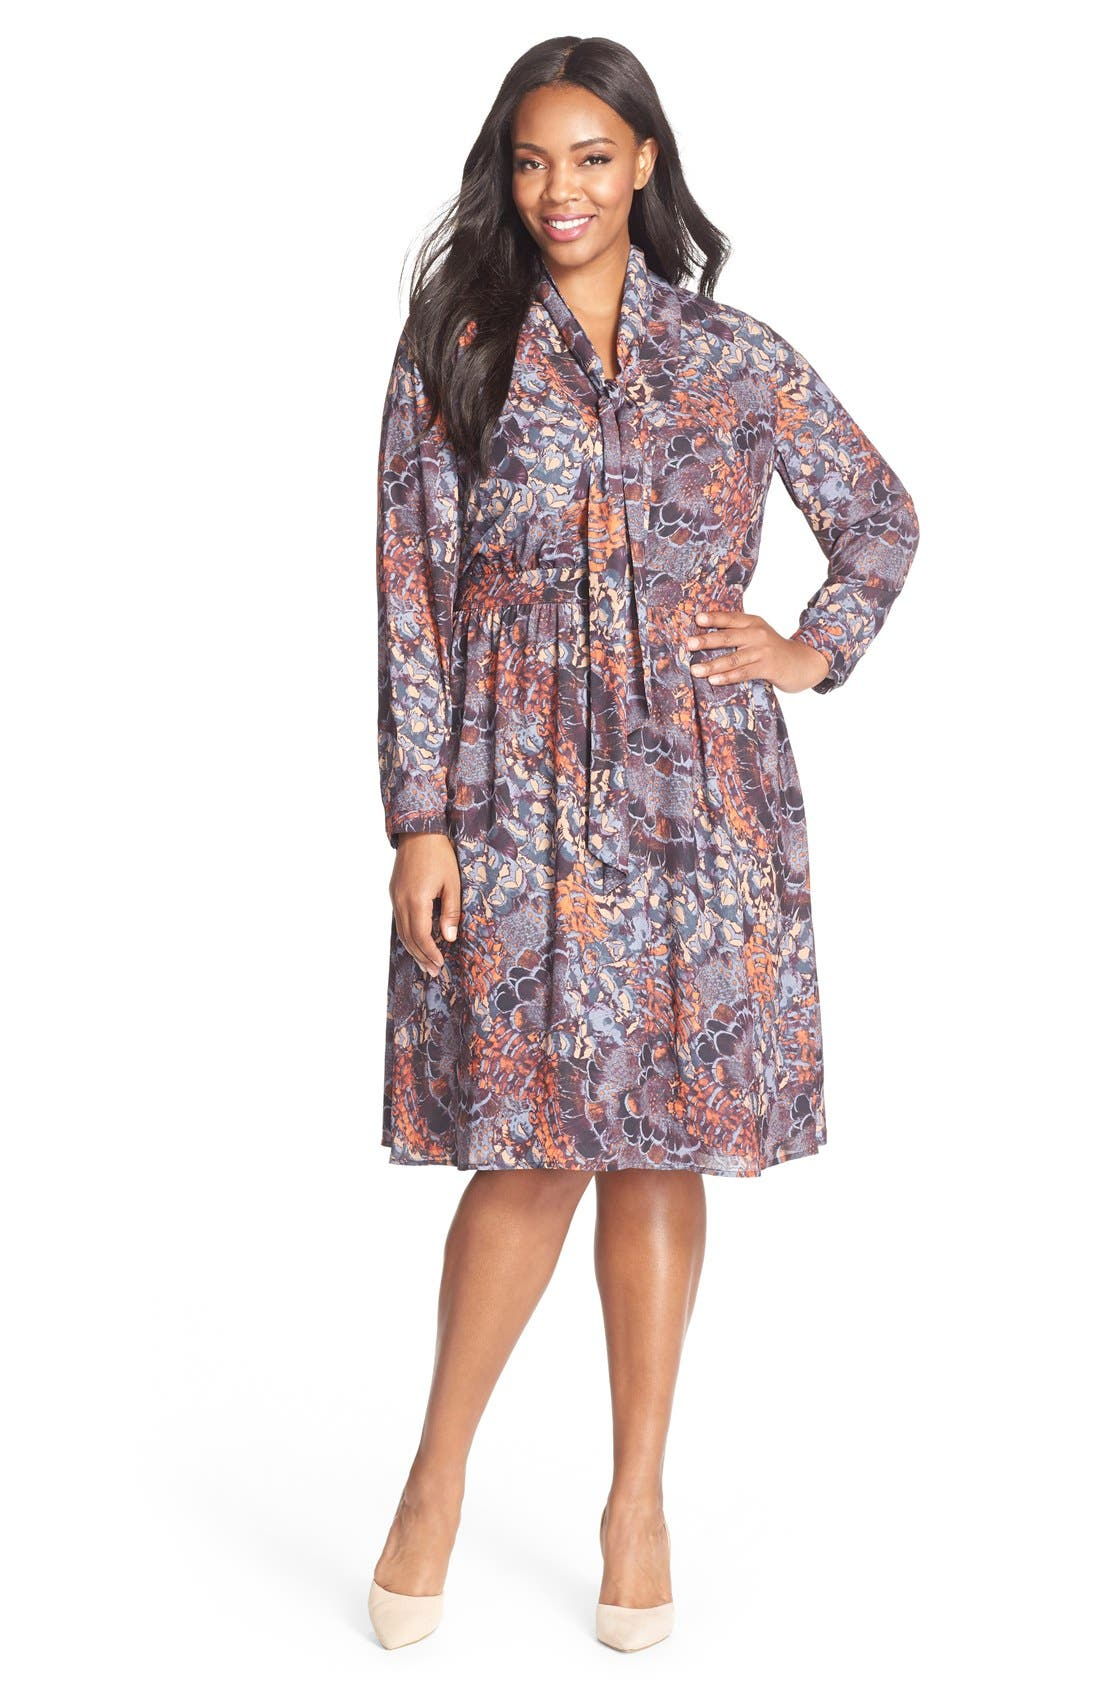 SEJOUR, Scarf Print Tie Neck Dress, Main thumbnail 1, color, 800